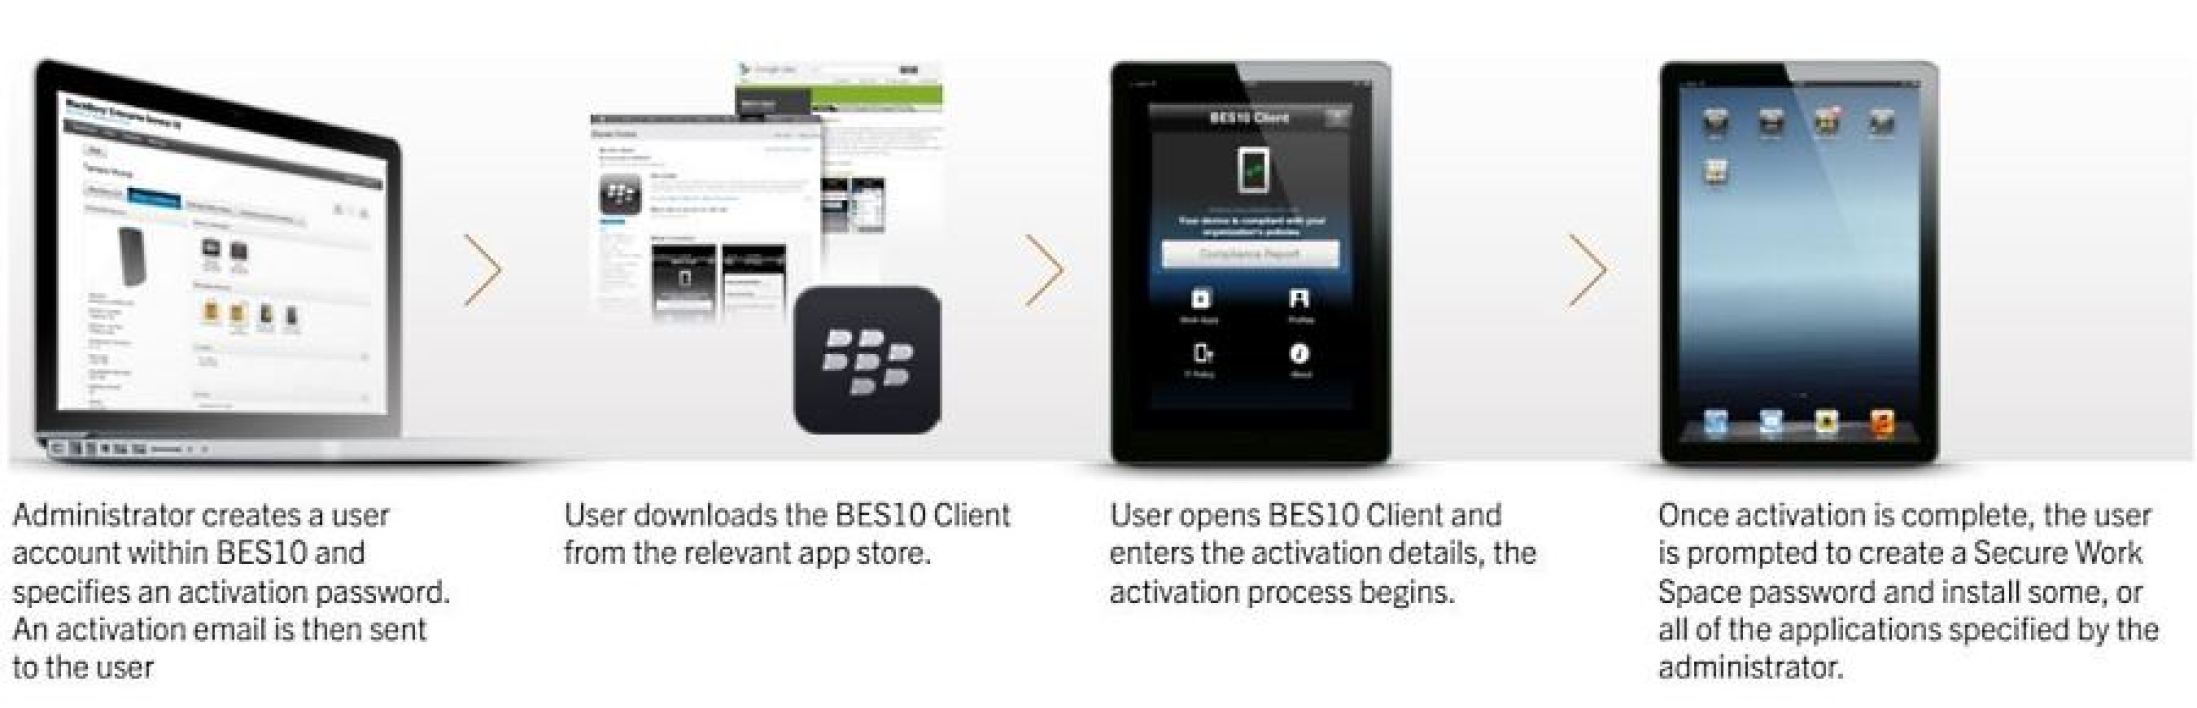 Secure Work Space de Blackberry